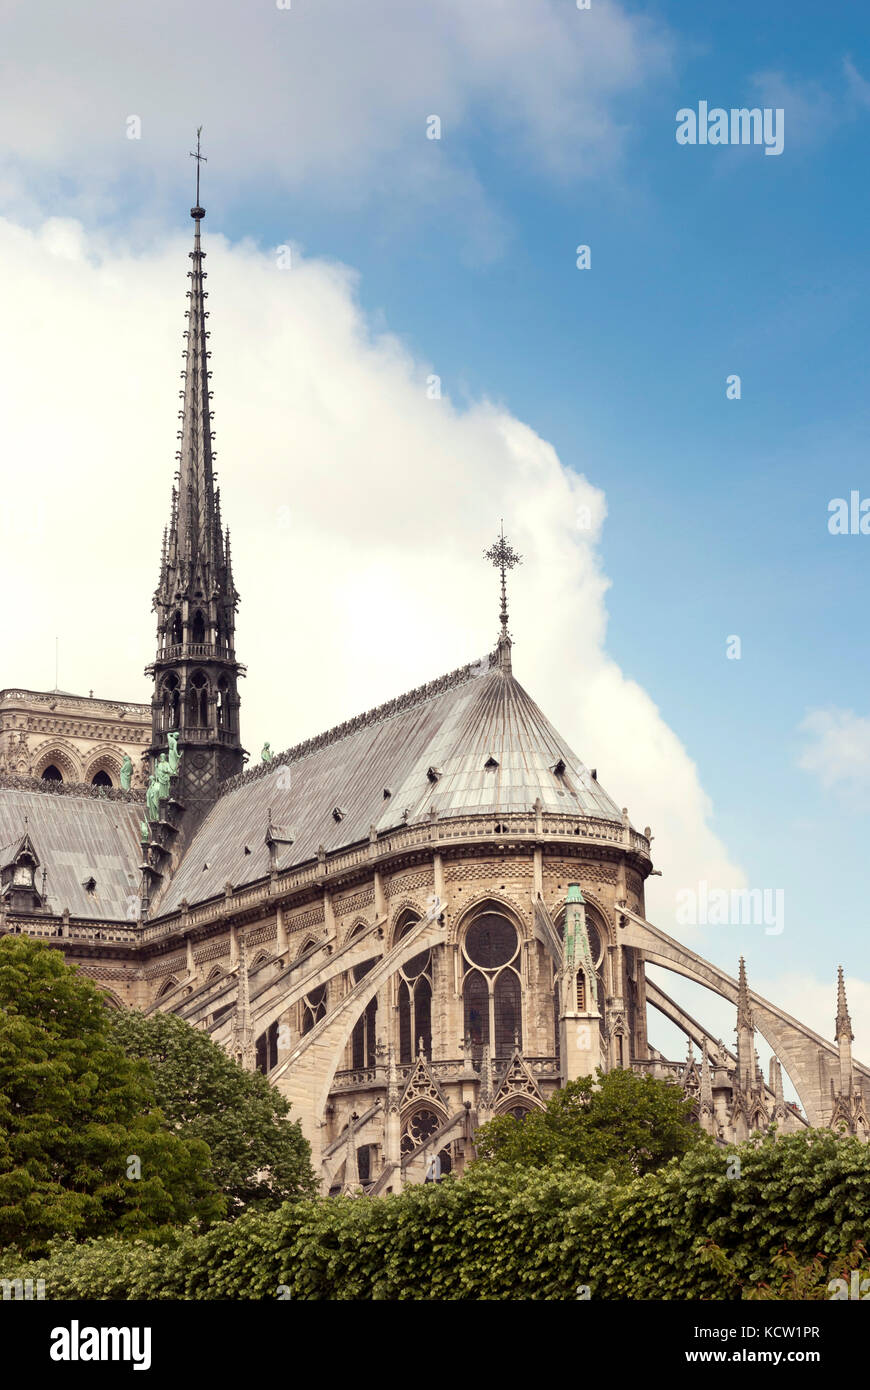 Notre-Dame de Paris, View of southern facade from the Seine - Stock Image